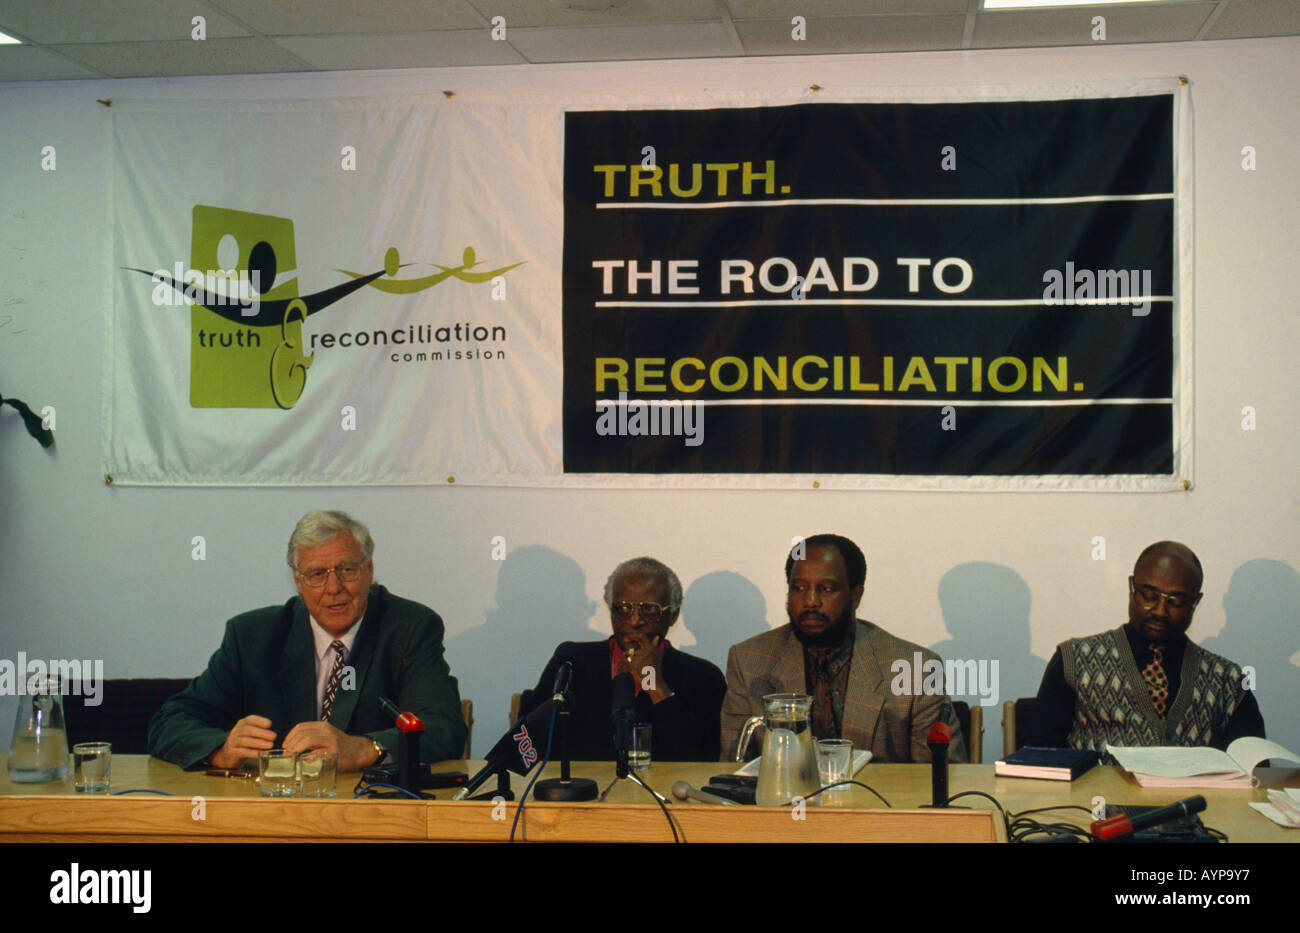 truth and reconciliation commission The first truth commission was formed in uganda in 1974 the most famous is the south african truth and reconciliation commission more than thirty nations.